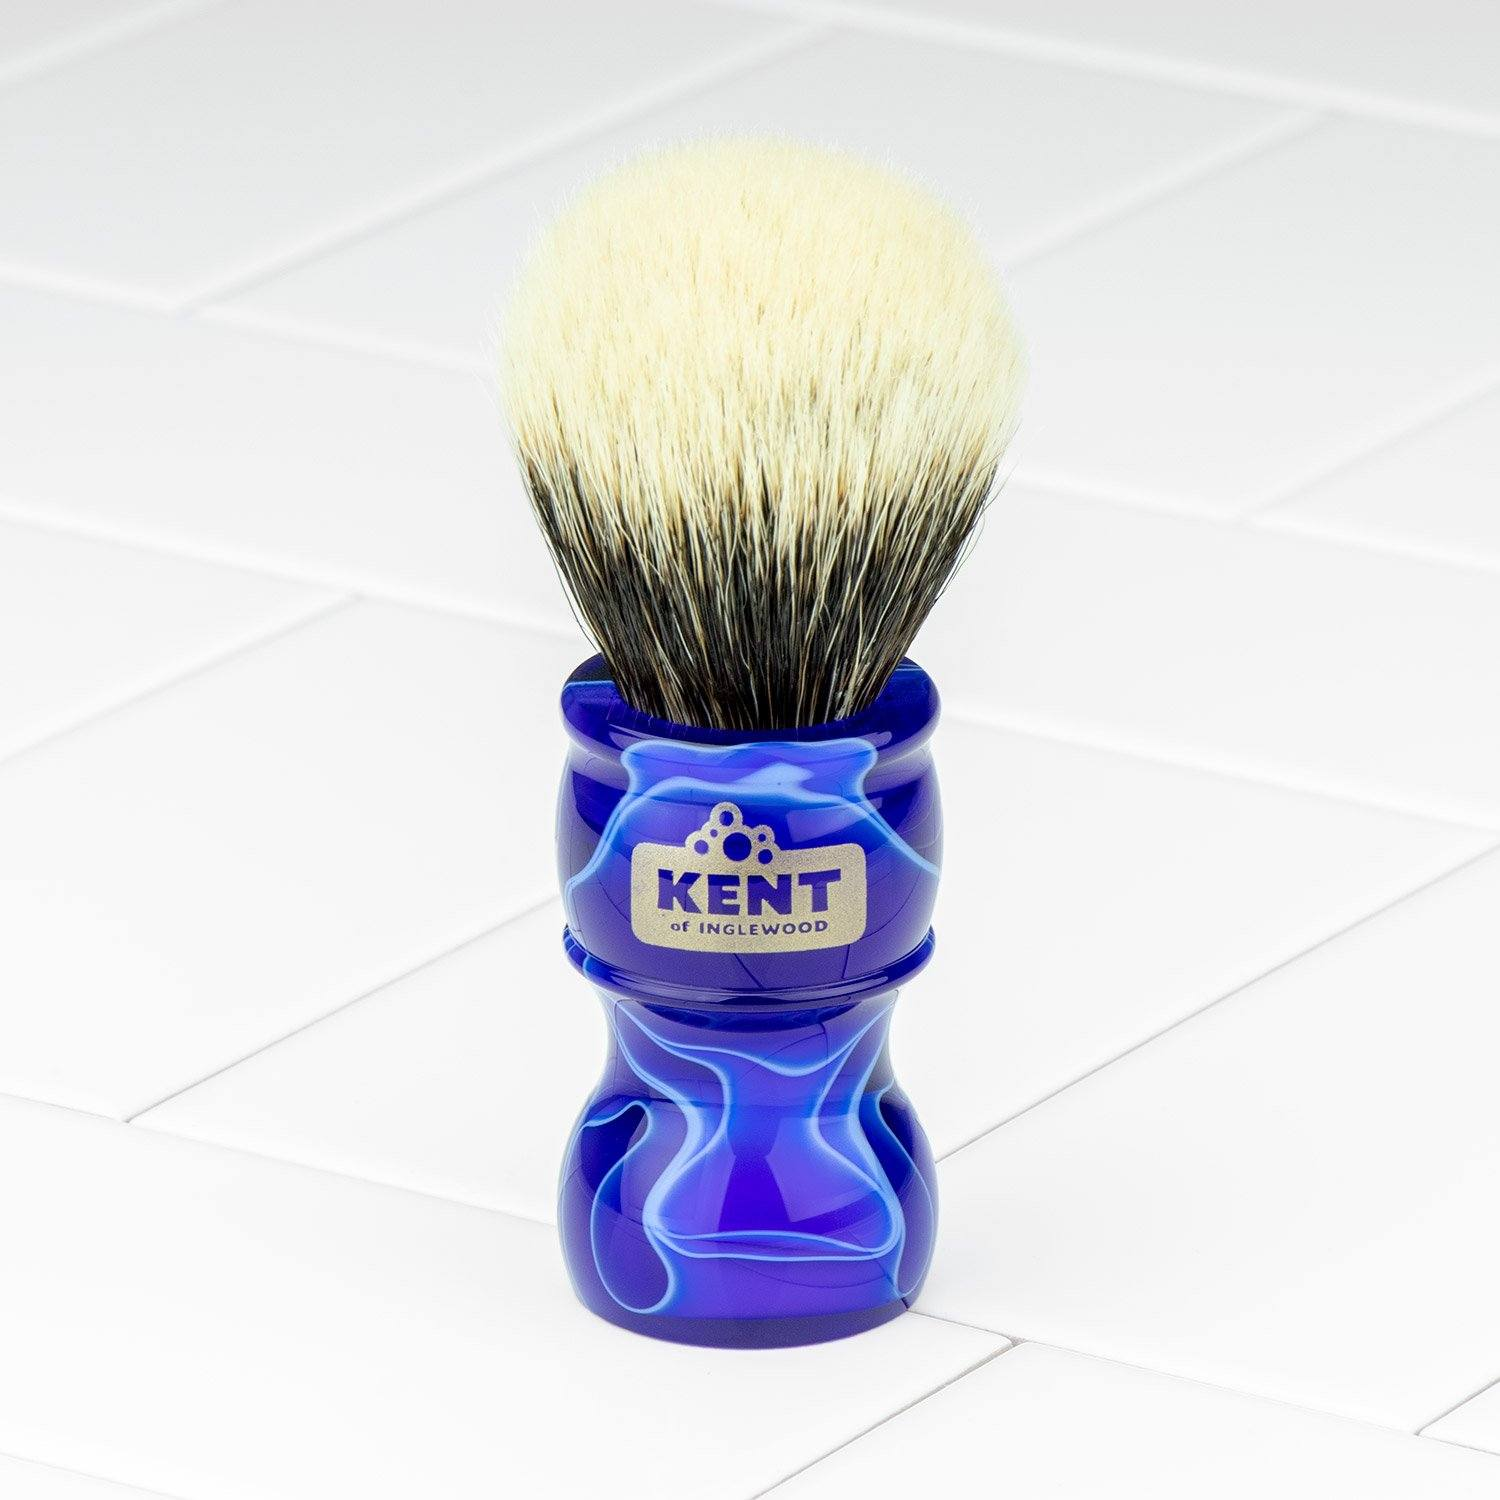 Kent Of Inglewood Two-Band Badger Hair Shaving Brush - Special Edition